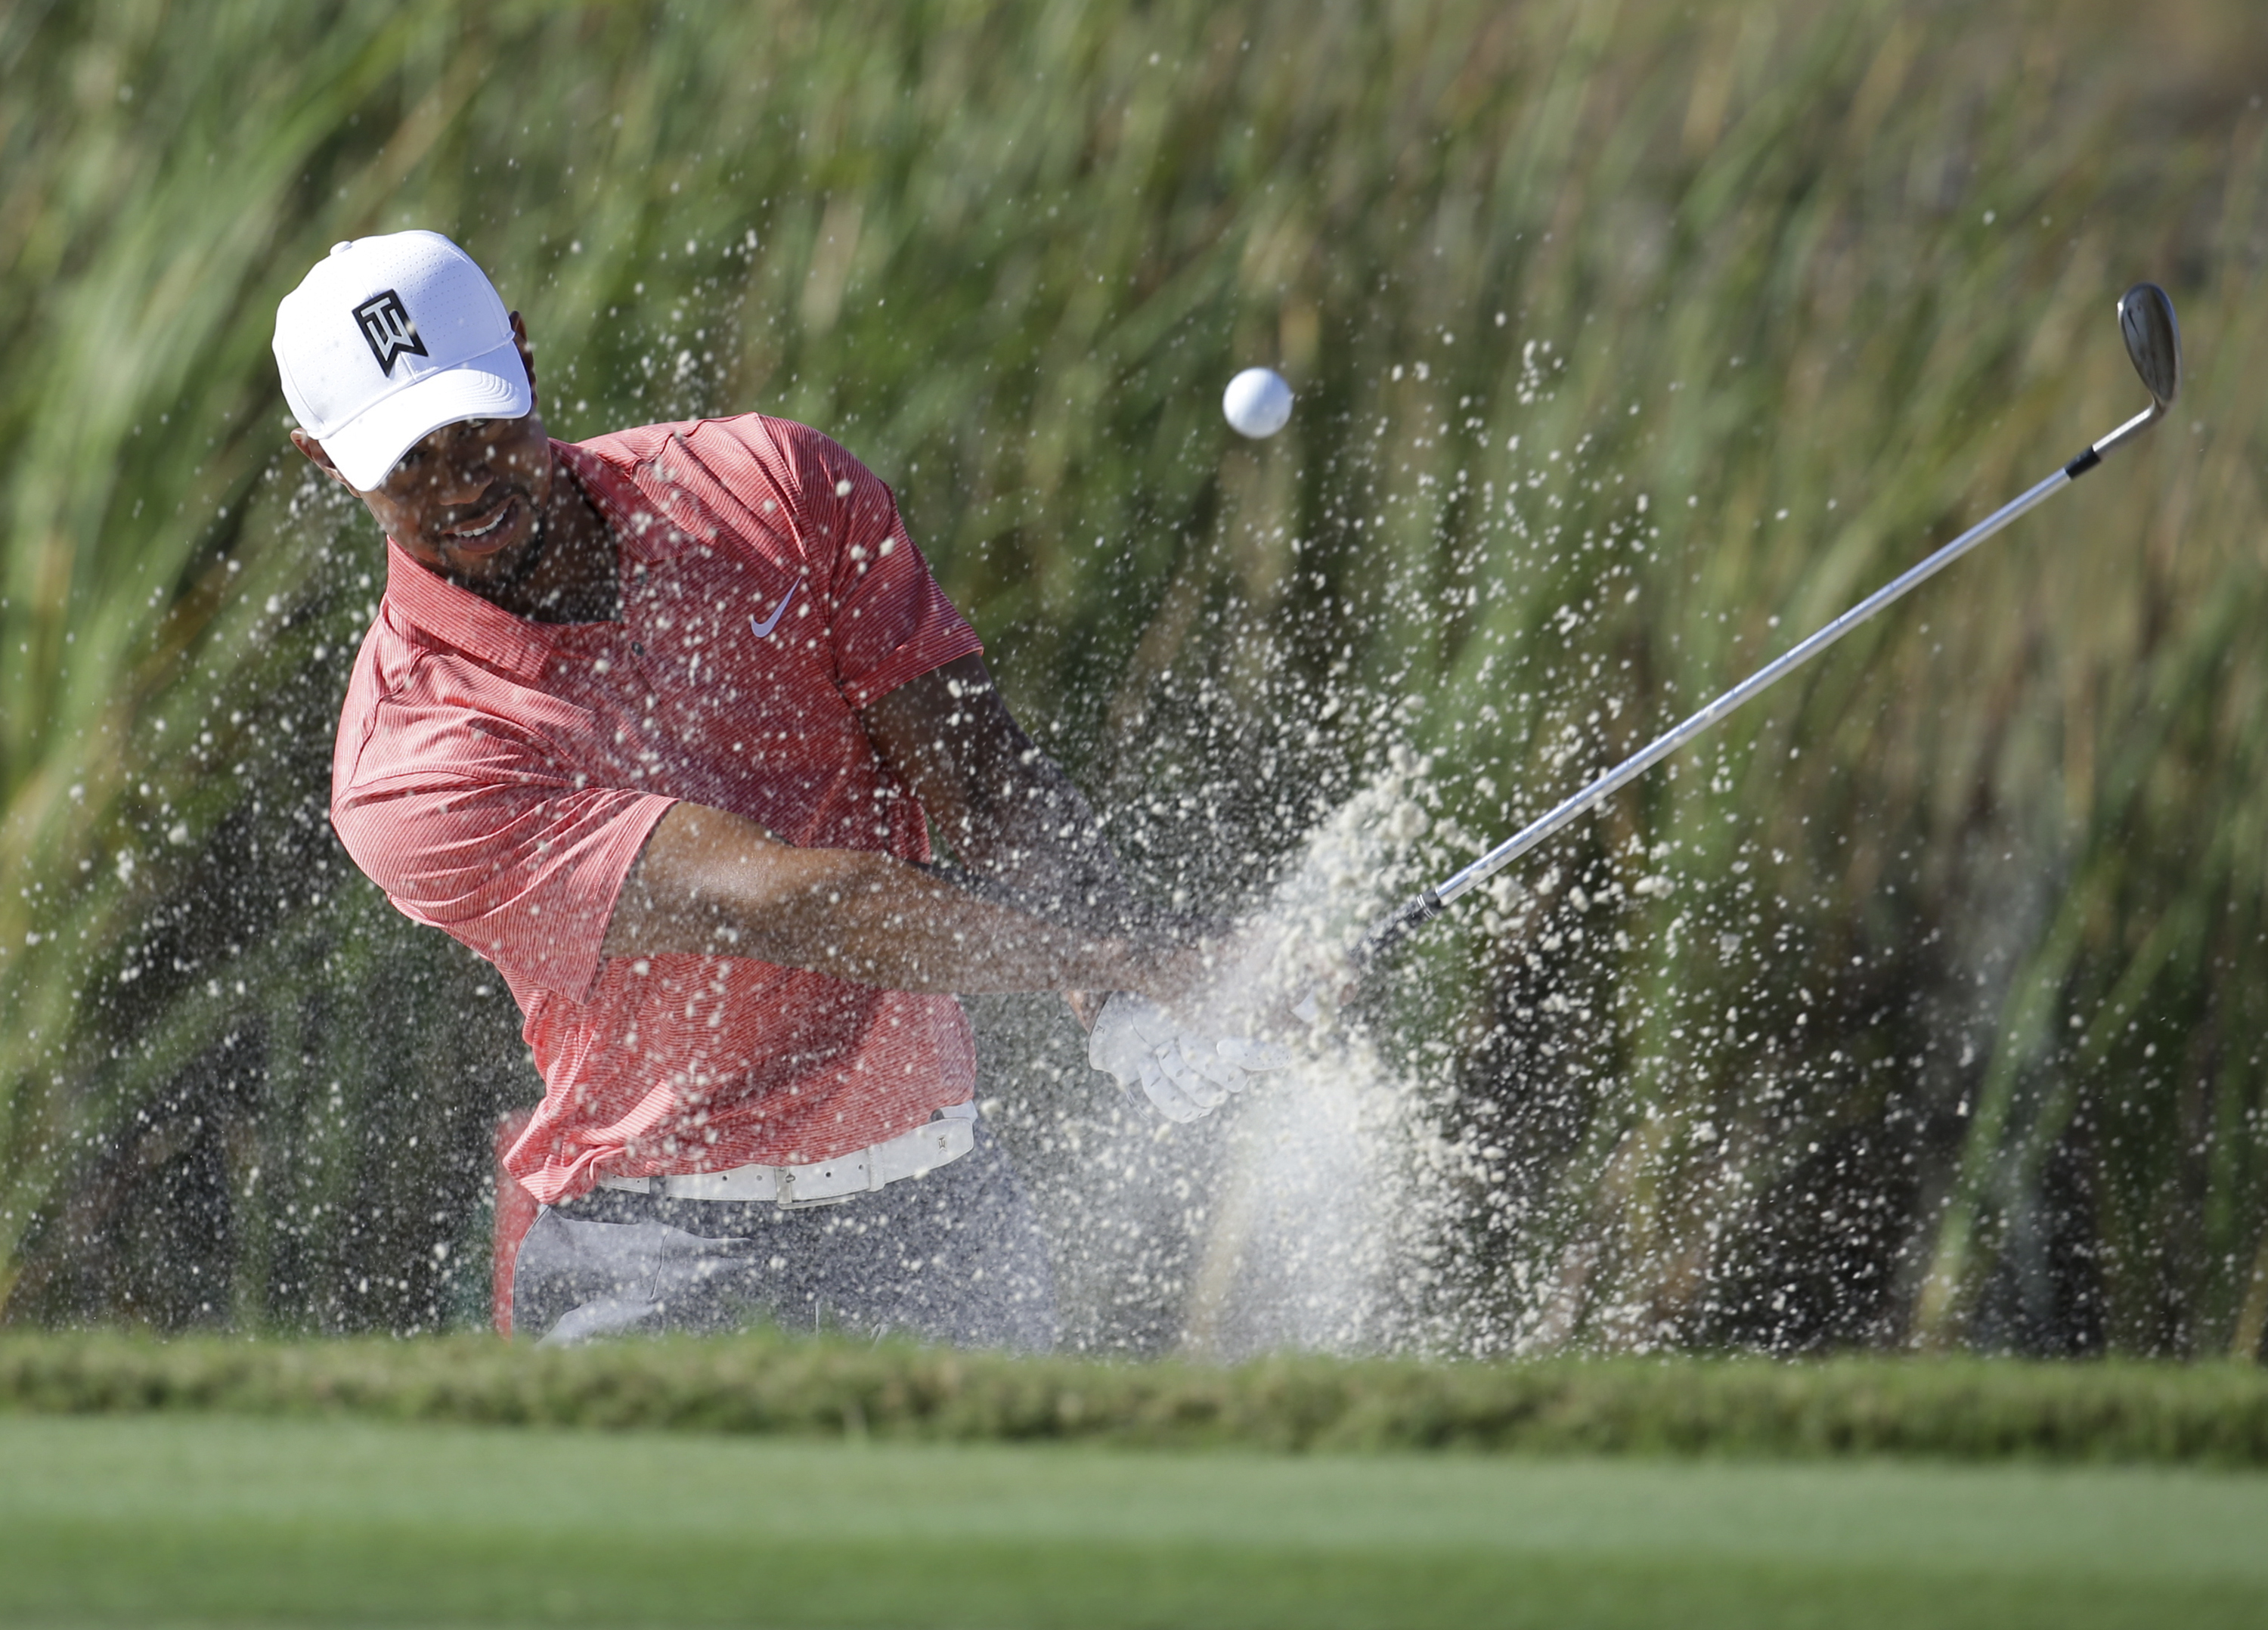 Tiger Woods hits from a bunker onto the sixth green during the Pro-Am at the Hero World Challenge golf tournament, Wednesday, Nov. 30, 2016, in Nassau, Bahamas. (AP Photo/Lynne Sladky)